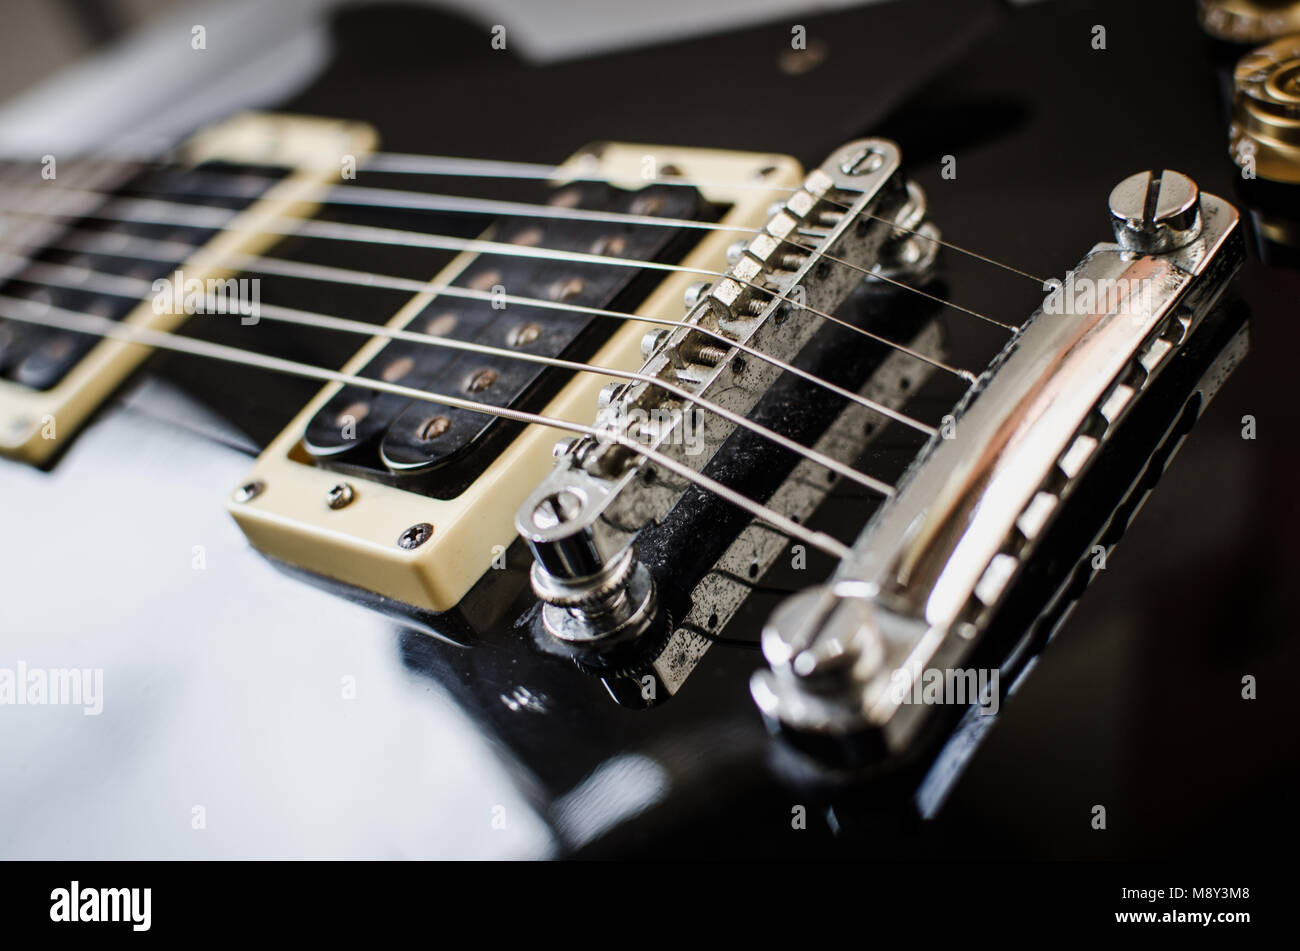 Electric Guitar Parts Stock Photos Of A Bridge And Pickups Image